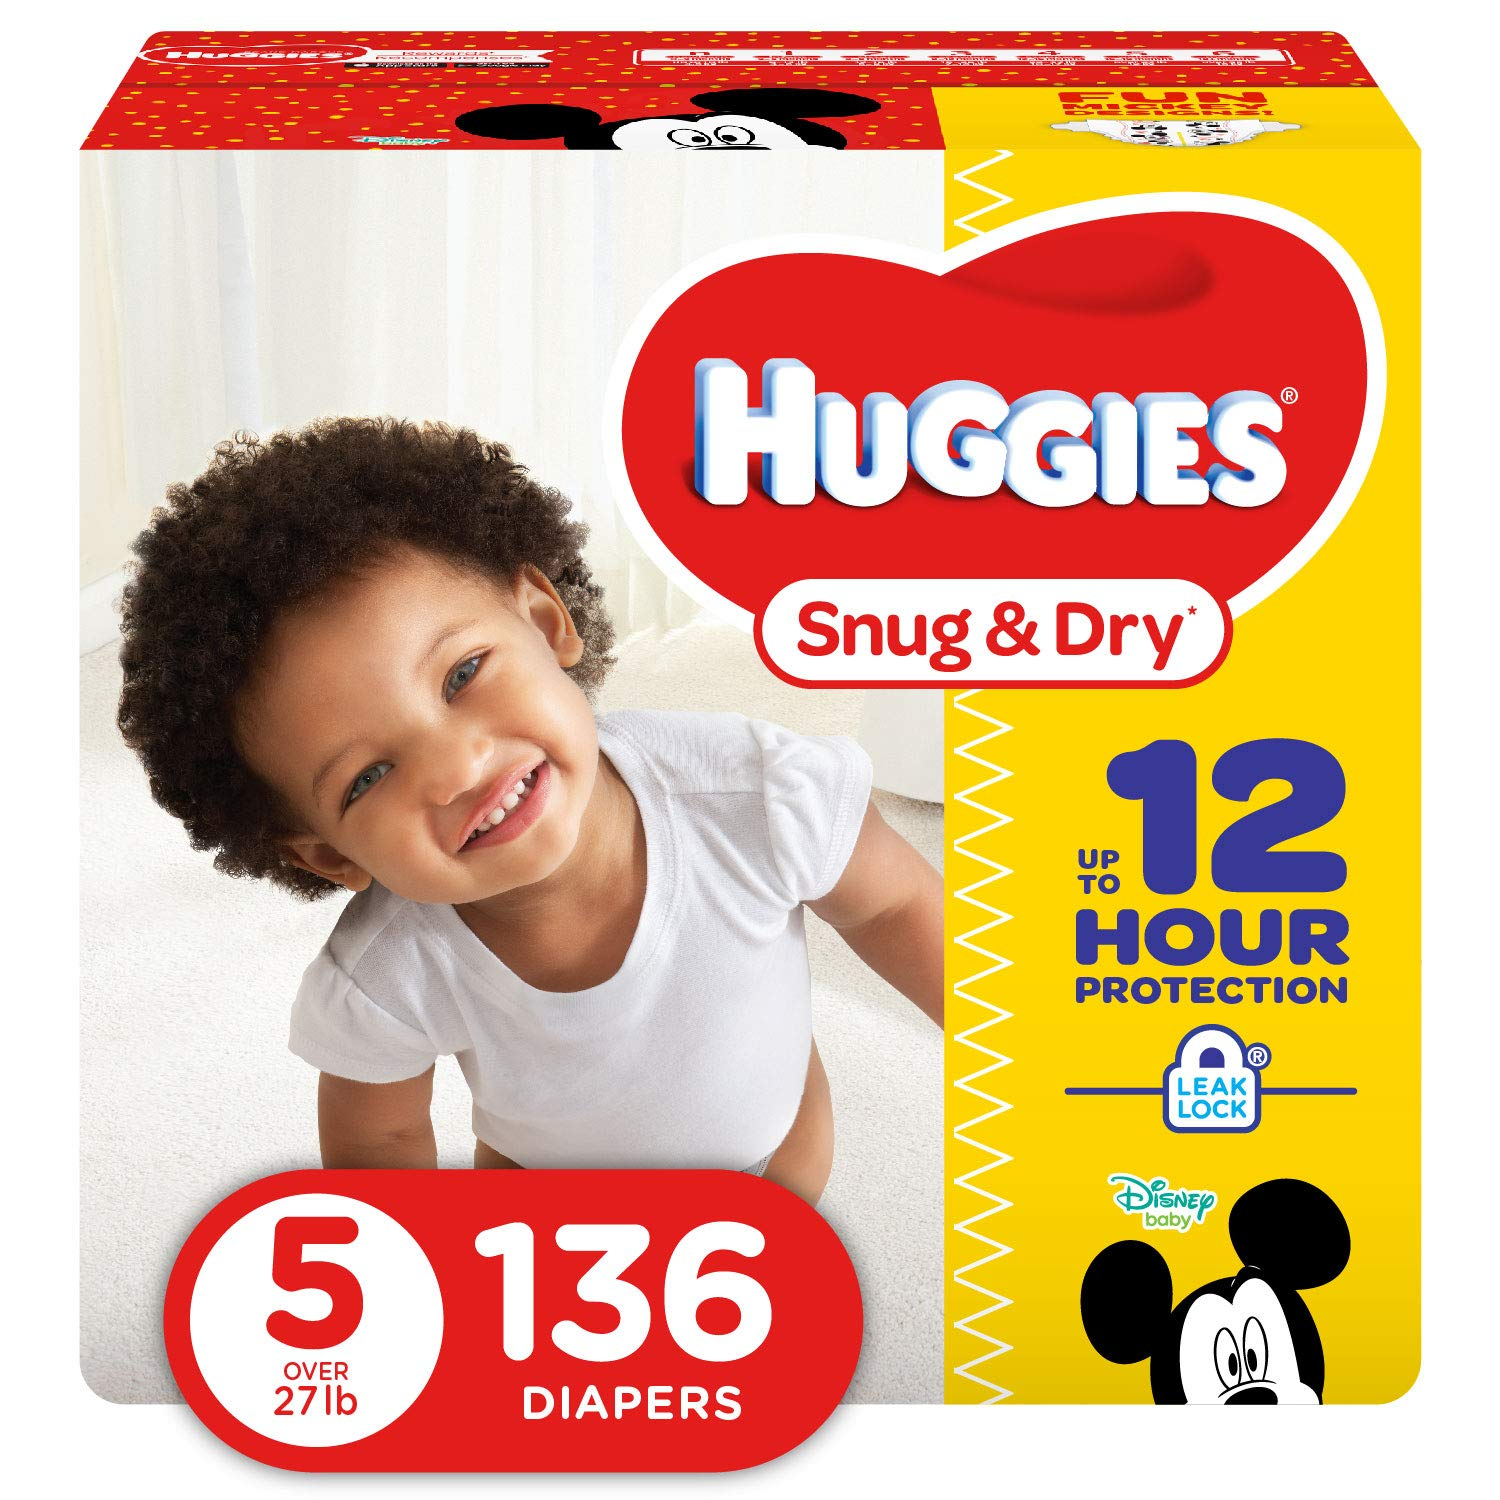 HUGGIES Snug & Dry Diapers, Size 5, 136 Count (Packaging May Vary) by HUGGIES